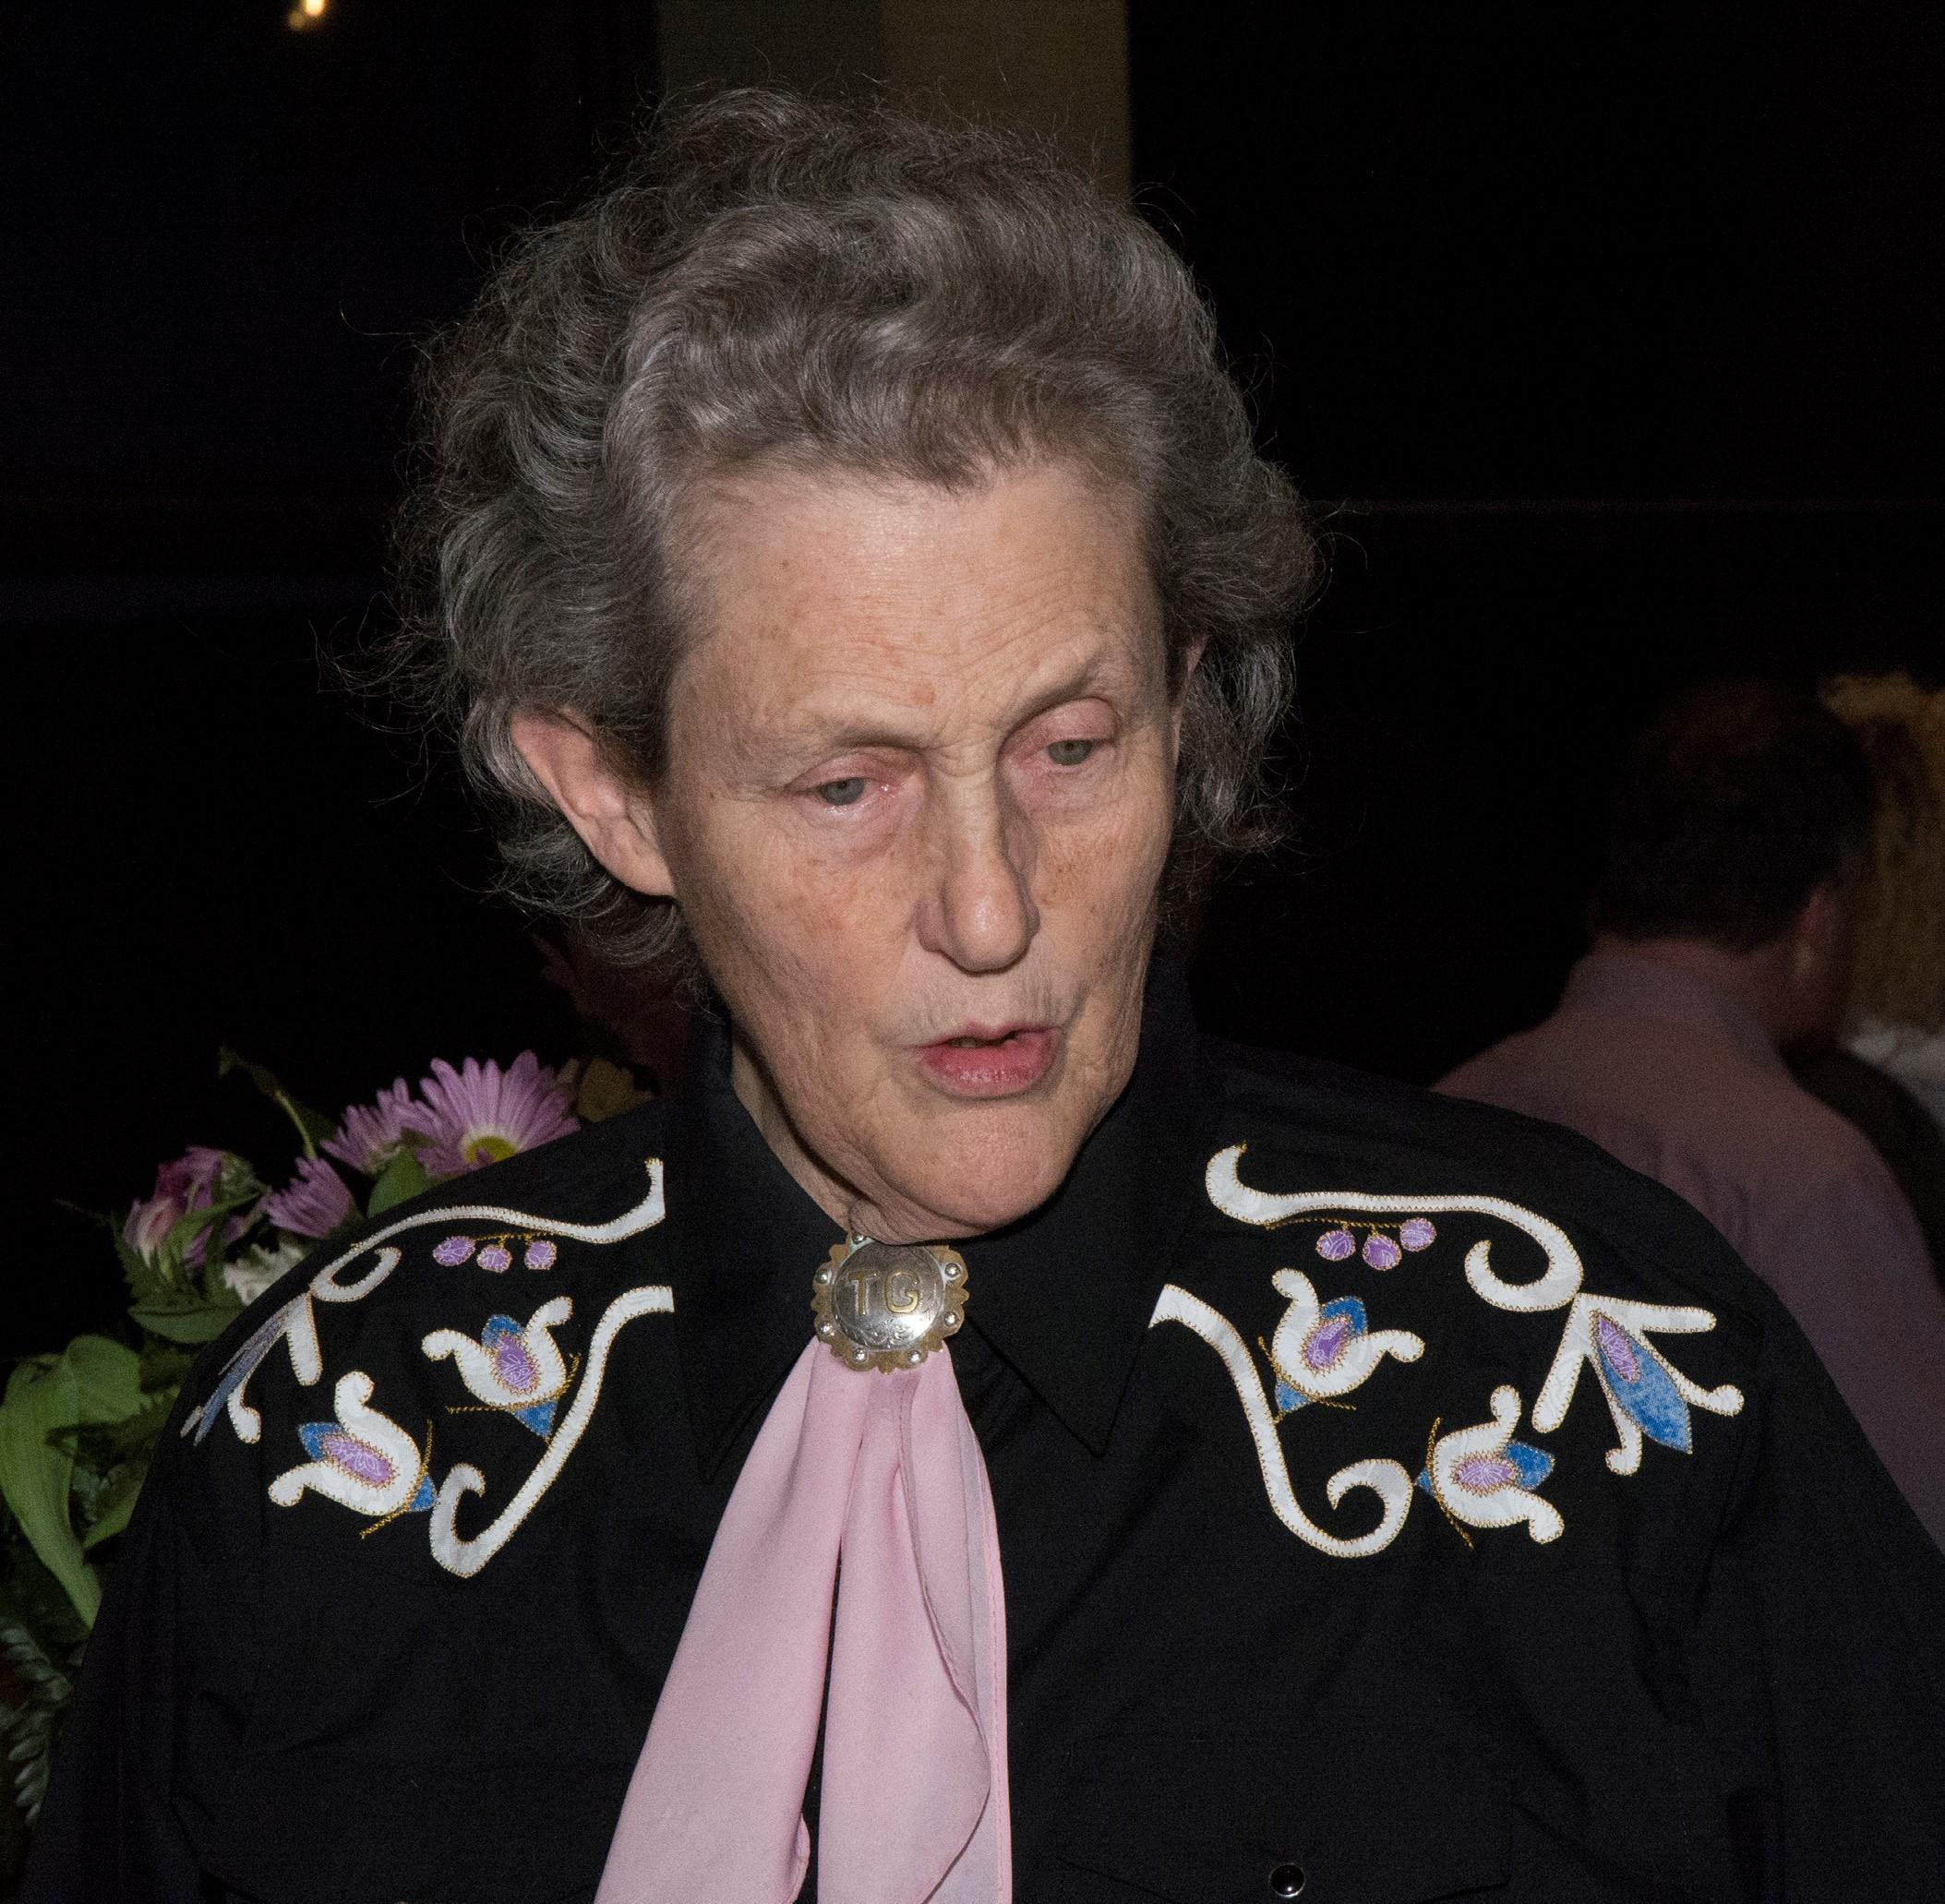 Dr. Temple Grandin on how minds work